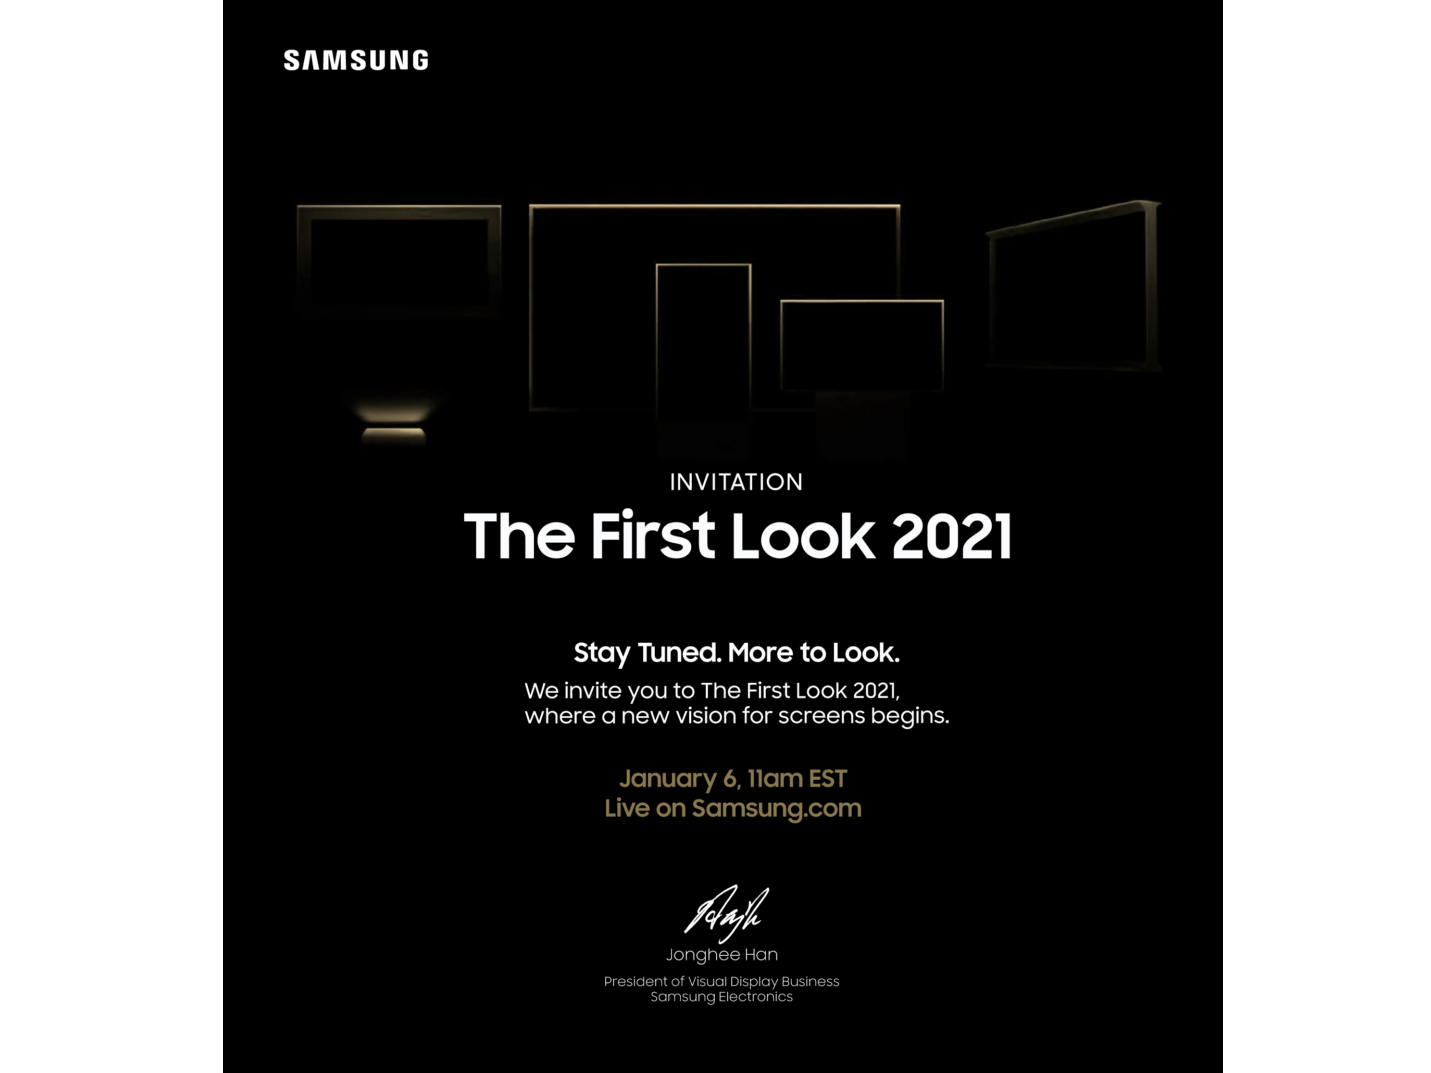 Samsung First Look 2021 event poster